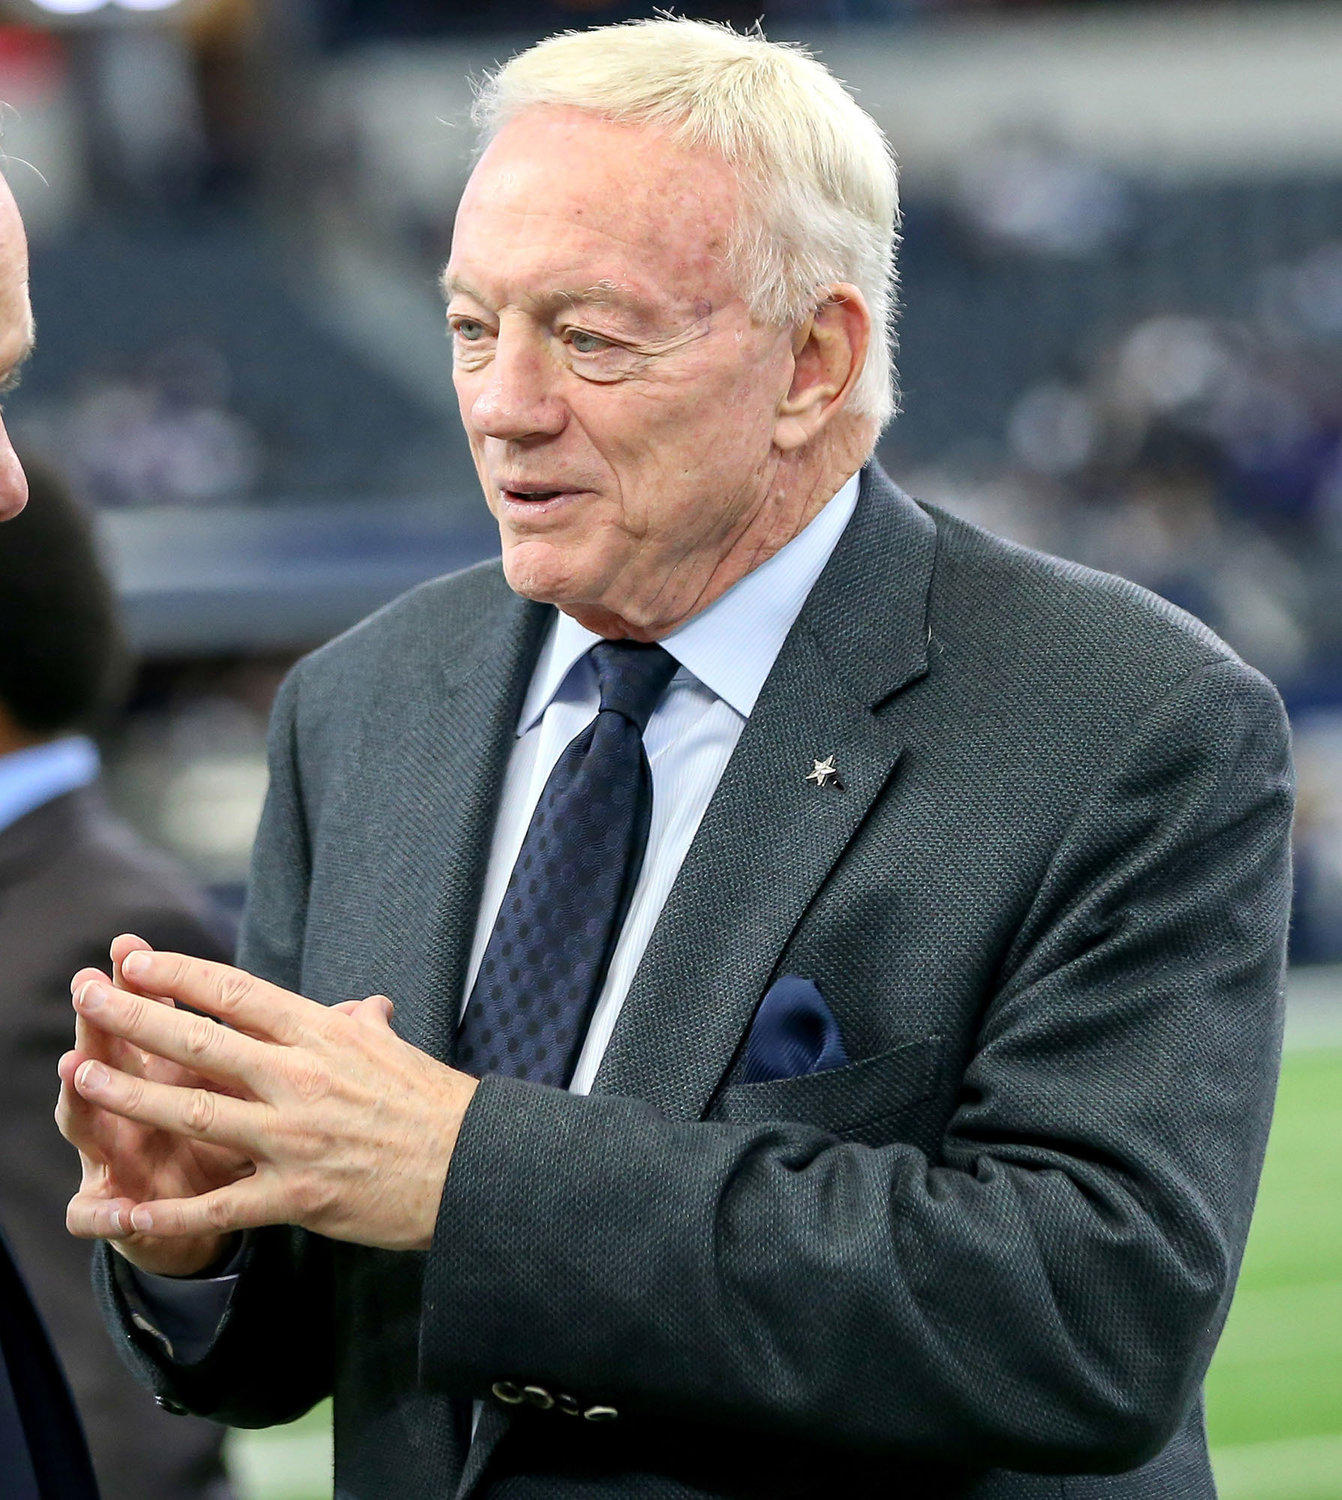 Dallas Cowboys owner Jerry Jones on the field before a game against the Baltimore Ravens on November 20, 2016, at AT&T Stadium in Arlington, Texas.